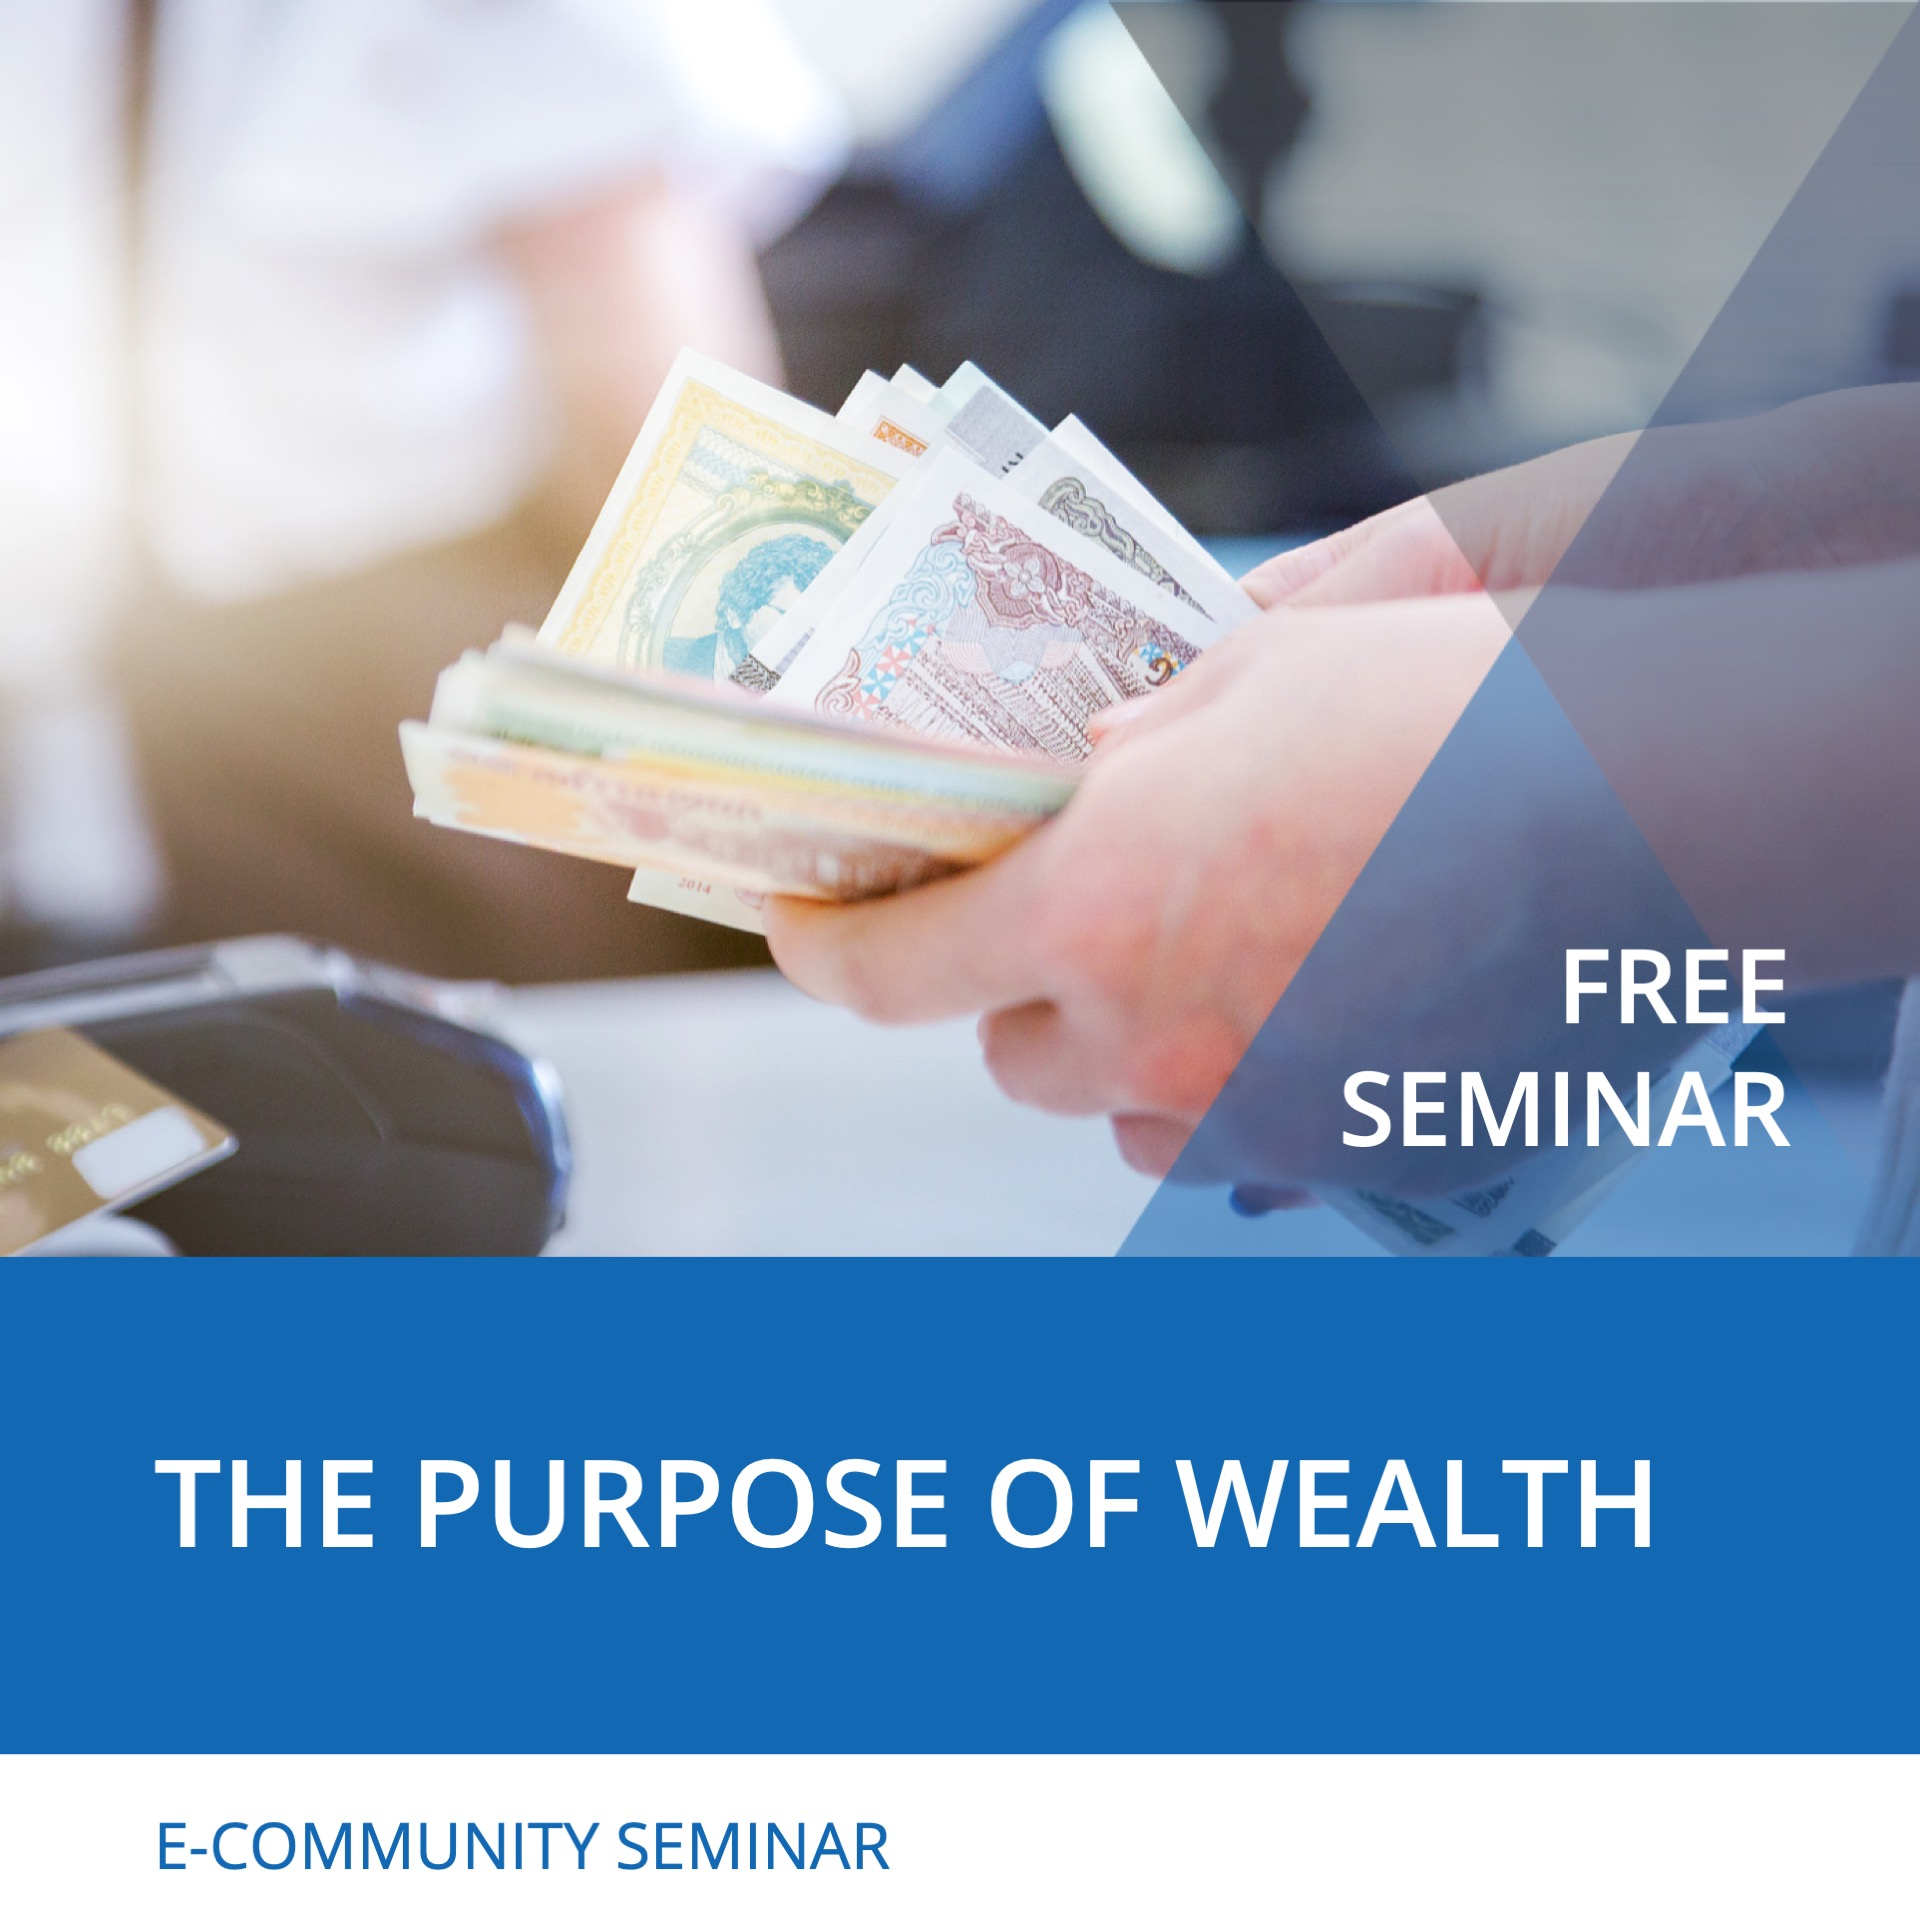 Seminar The Purpose of Wealth - Nehemiah E-Community